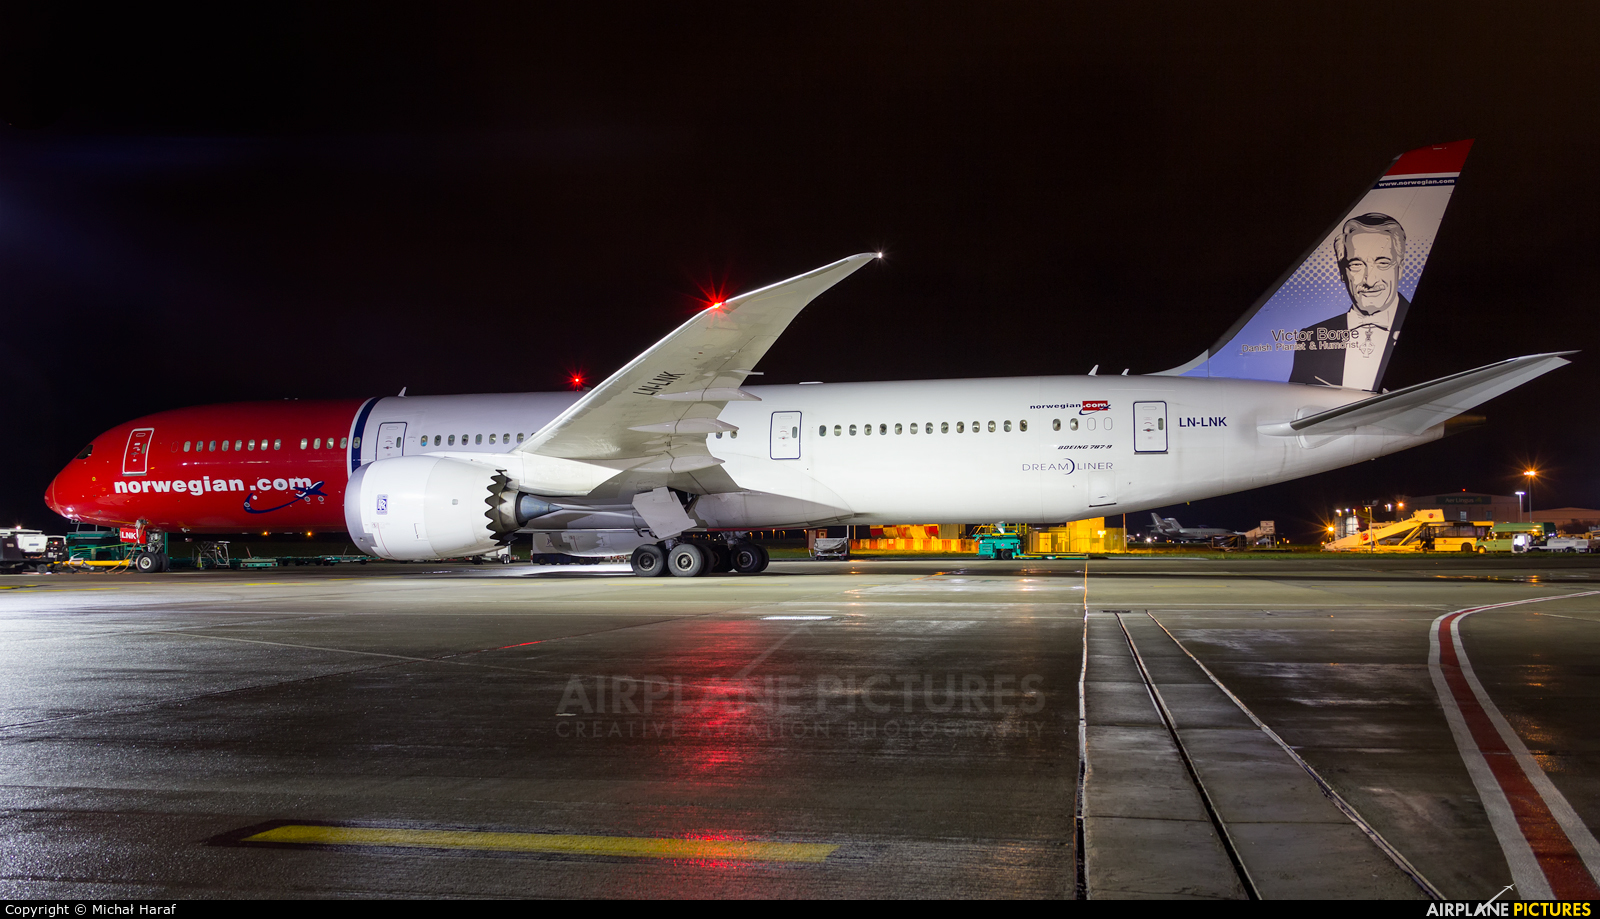 Norwegian Air International LN-LNK aircraft at Dublin